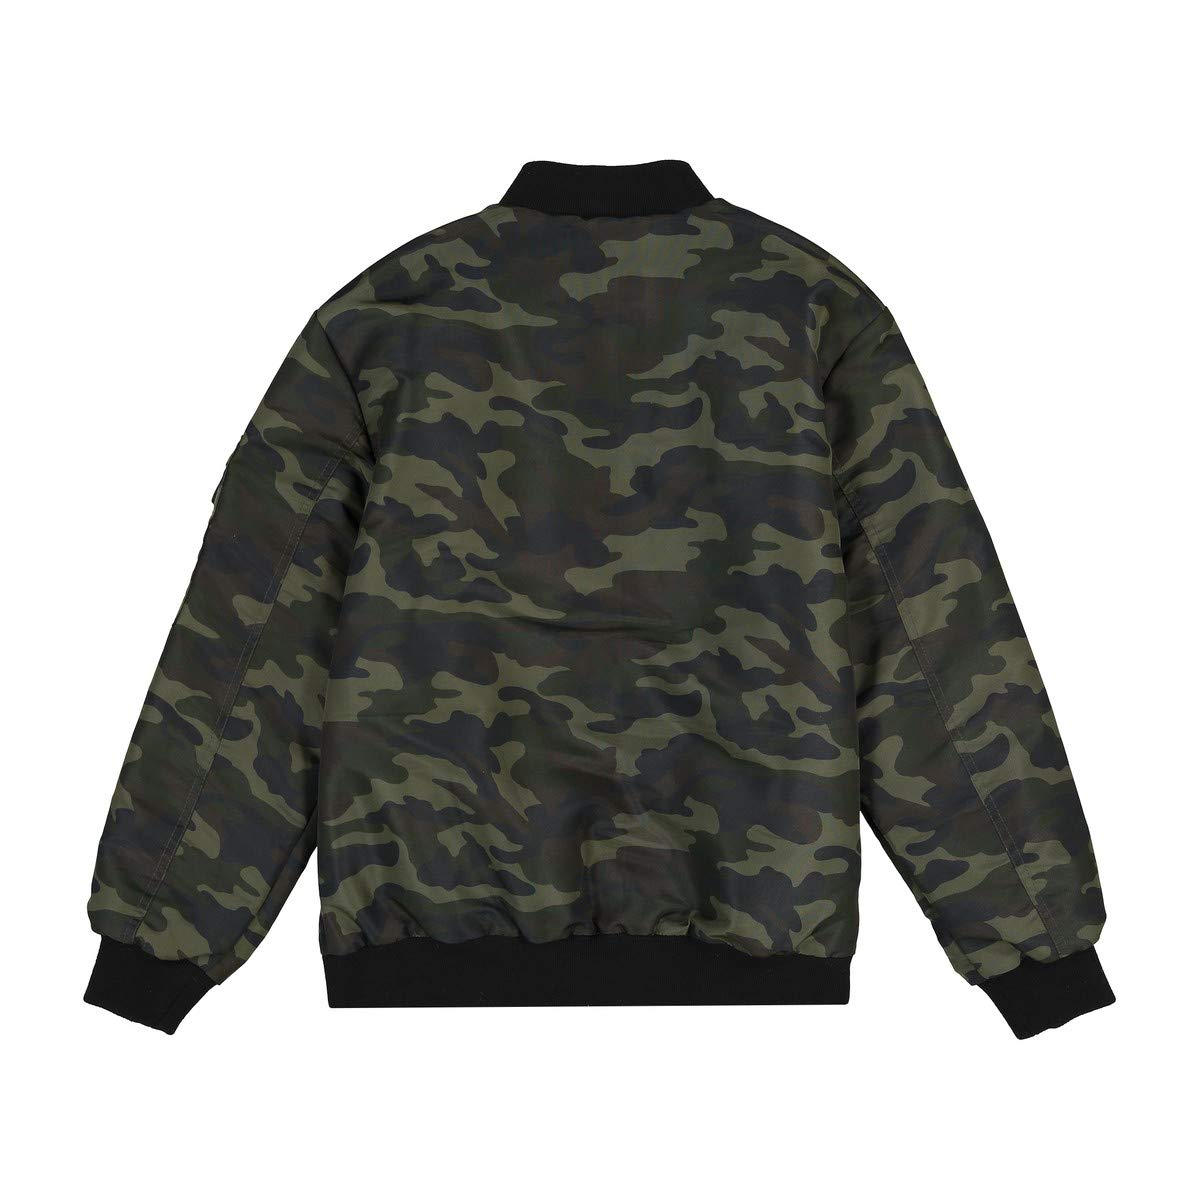 La Redoute Collections Big Boys Camouflage Bomber Jacket, 10-16 Years Green Size 14 Years - 63 in. by La Redoute (Image #2)